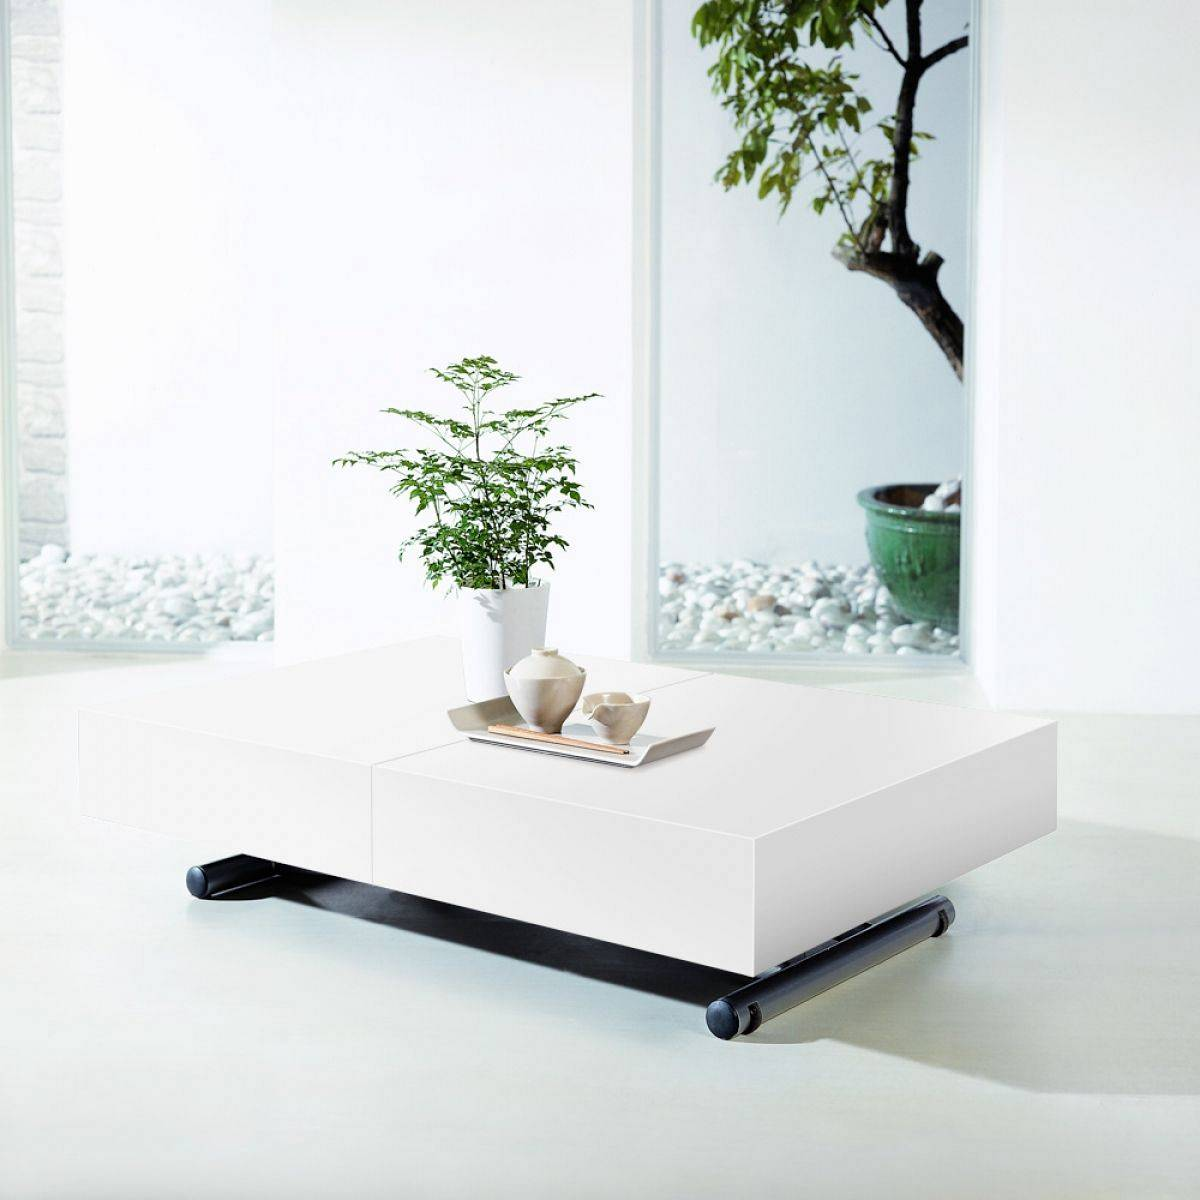 Table basse relevable uk - Table basse relevable design ...